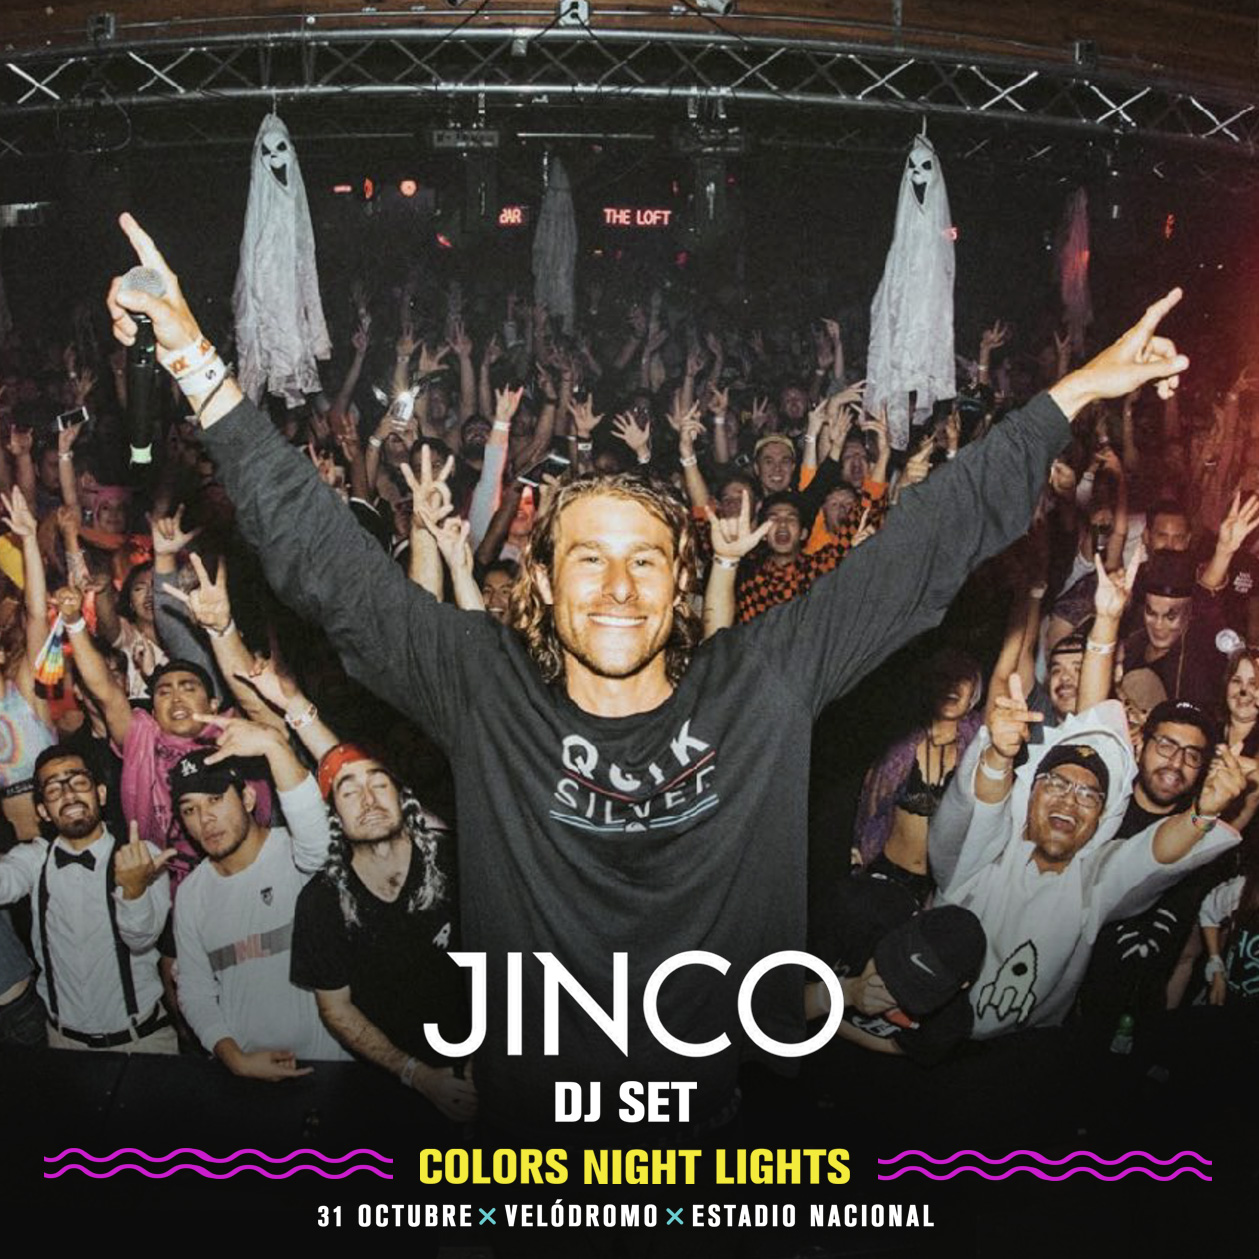 Jinco es el Dj set que se suma a Colors Night Lights